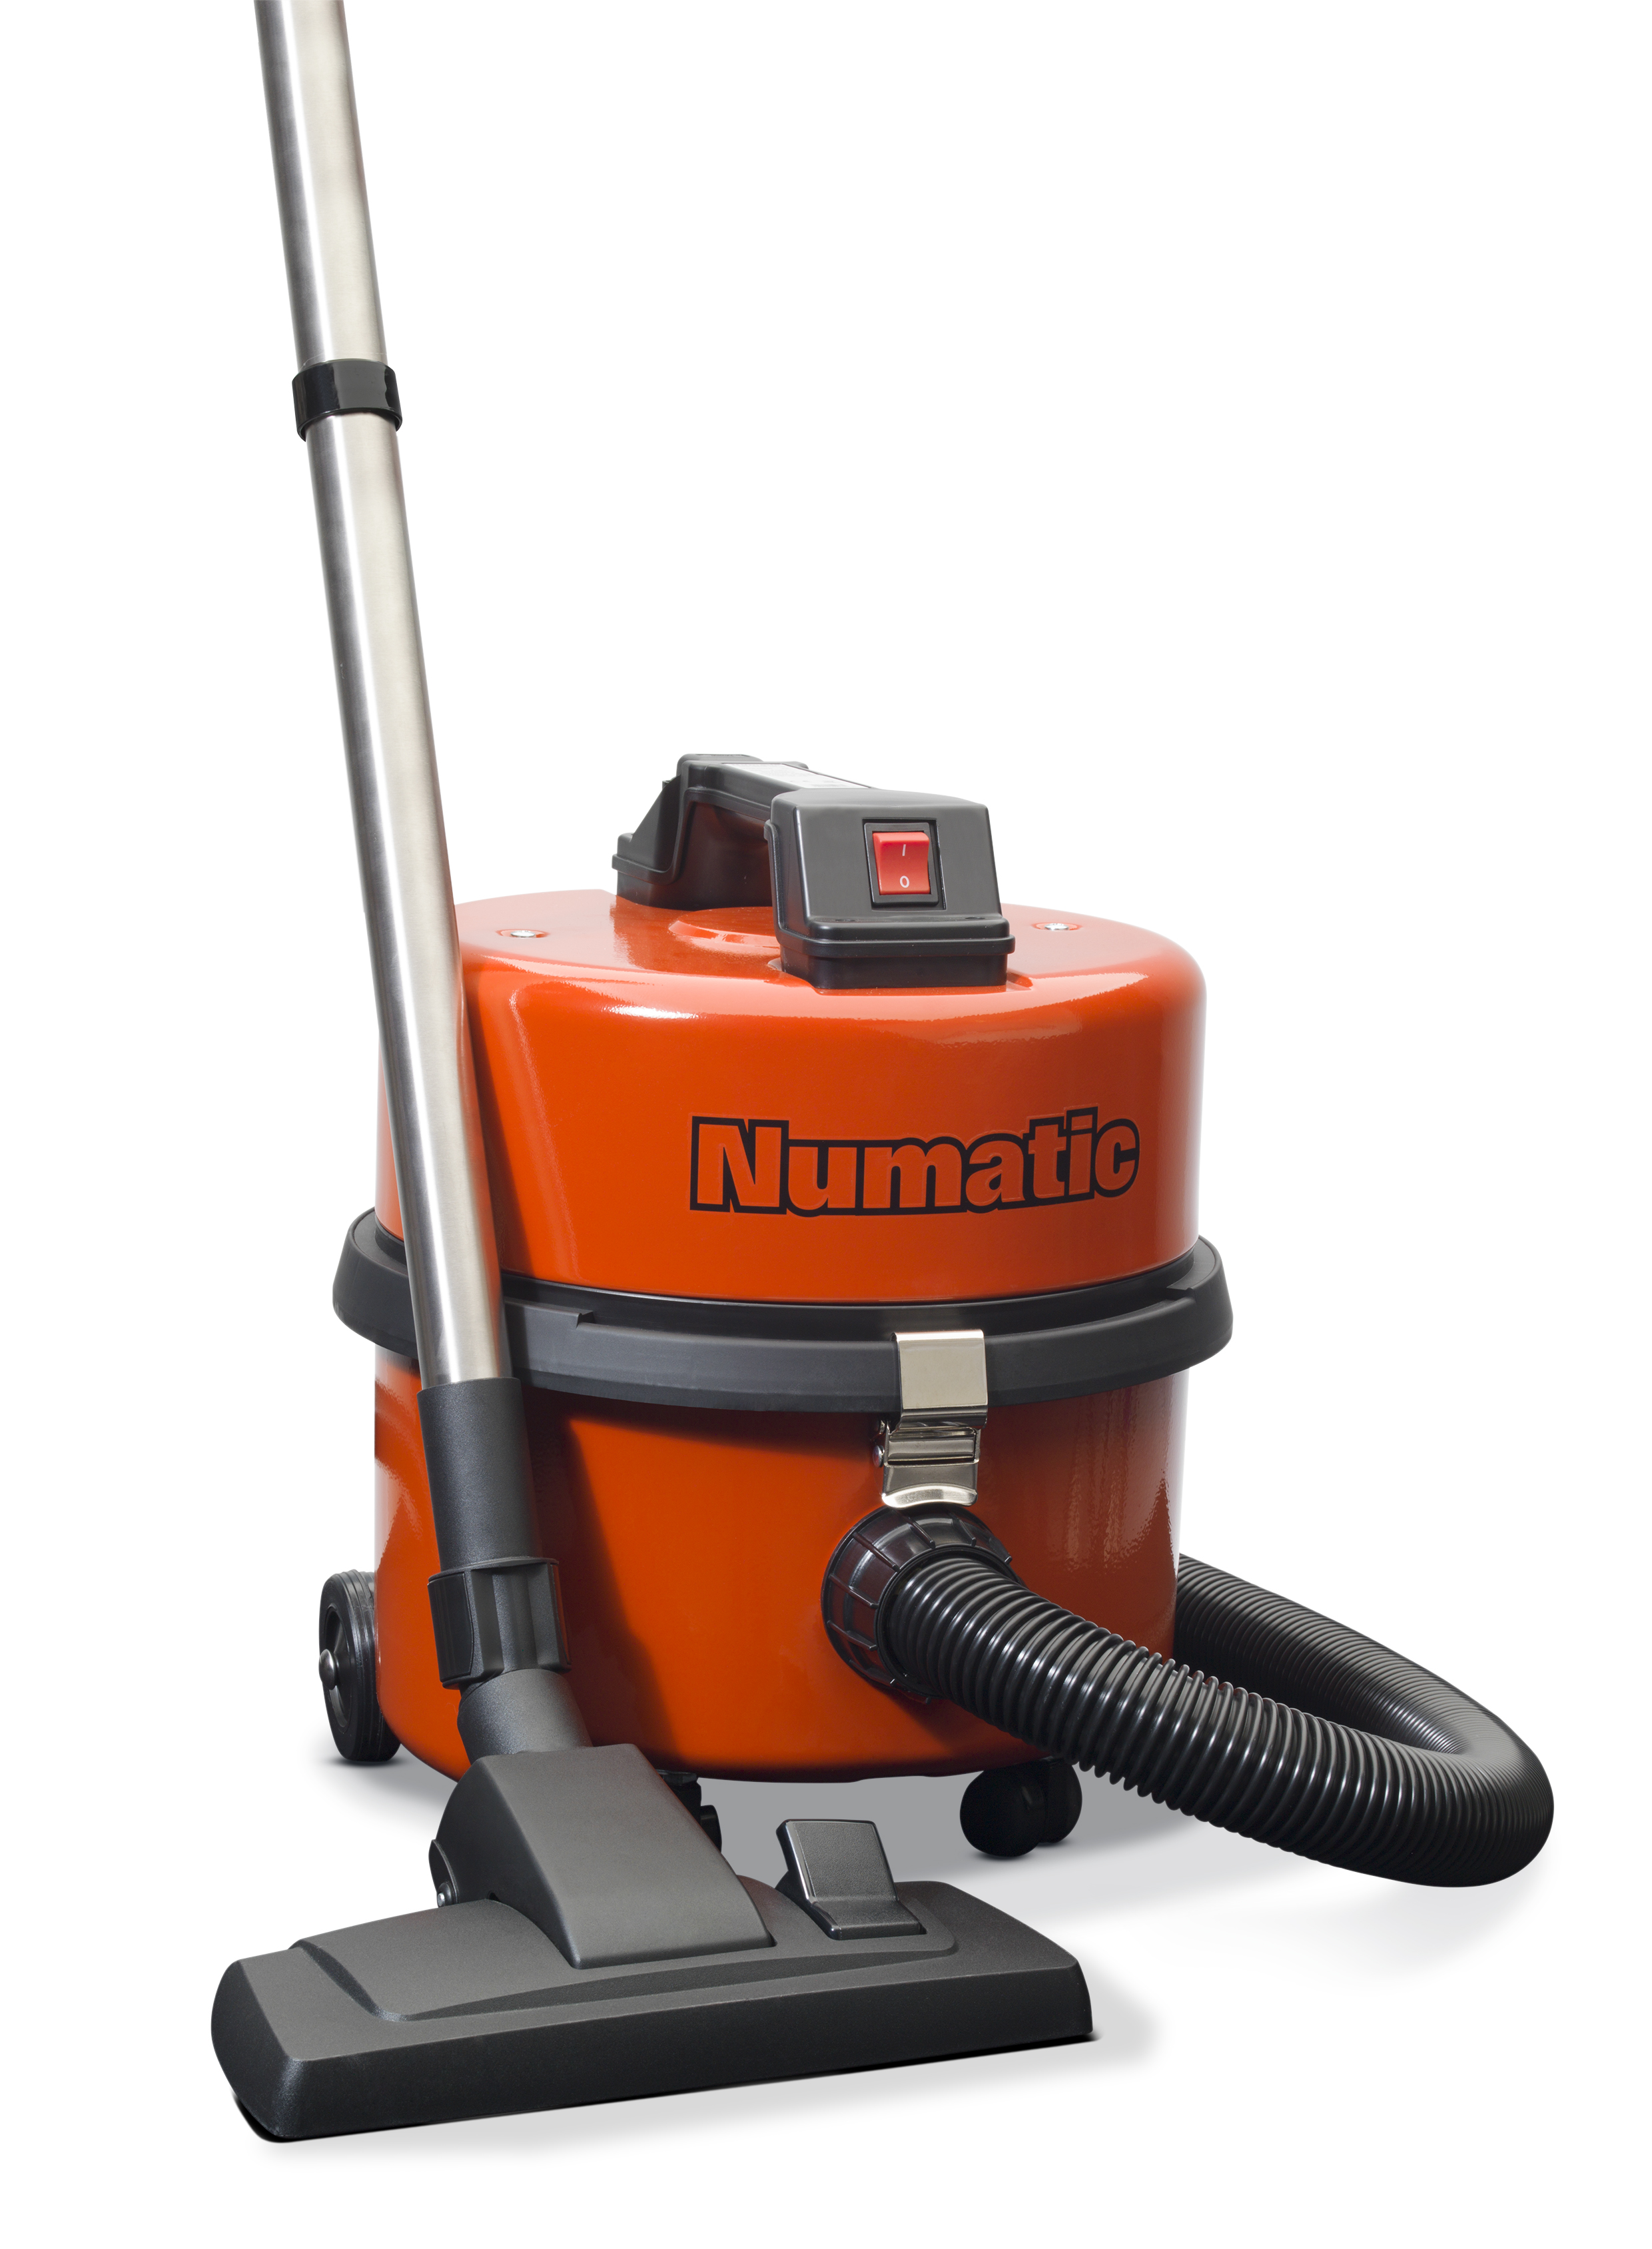 Numatic Commercial Dry Vacuum Cleaner